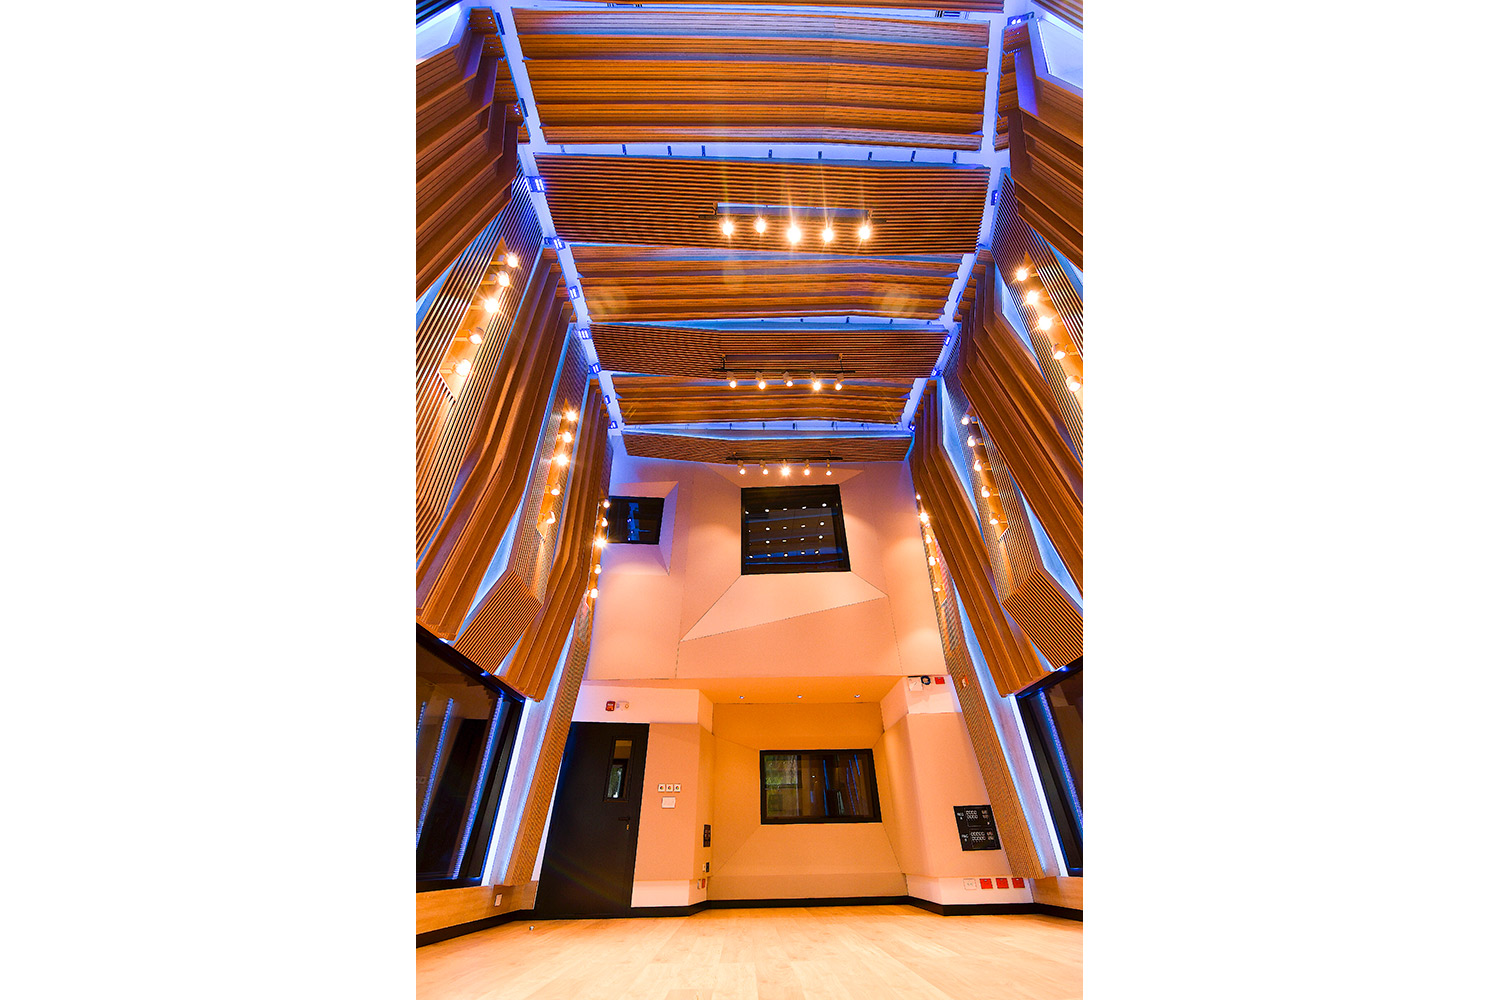 Universidad ICESI new world-class recording studio facility designed by WSDG. Double height live room 2.